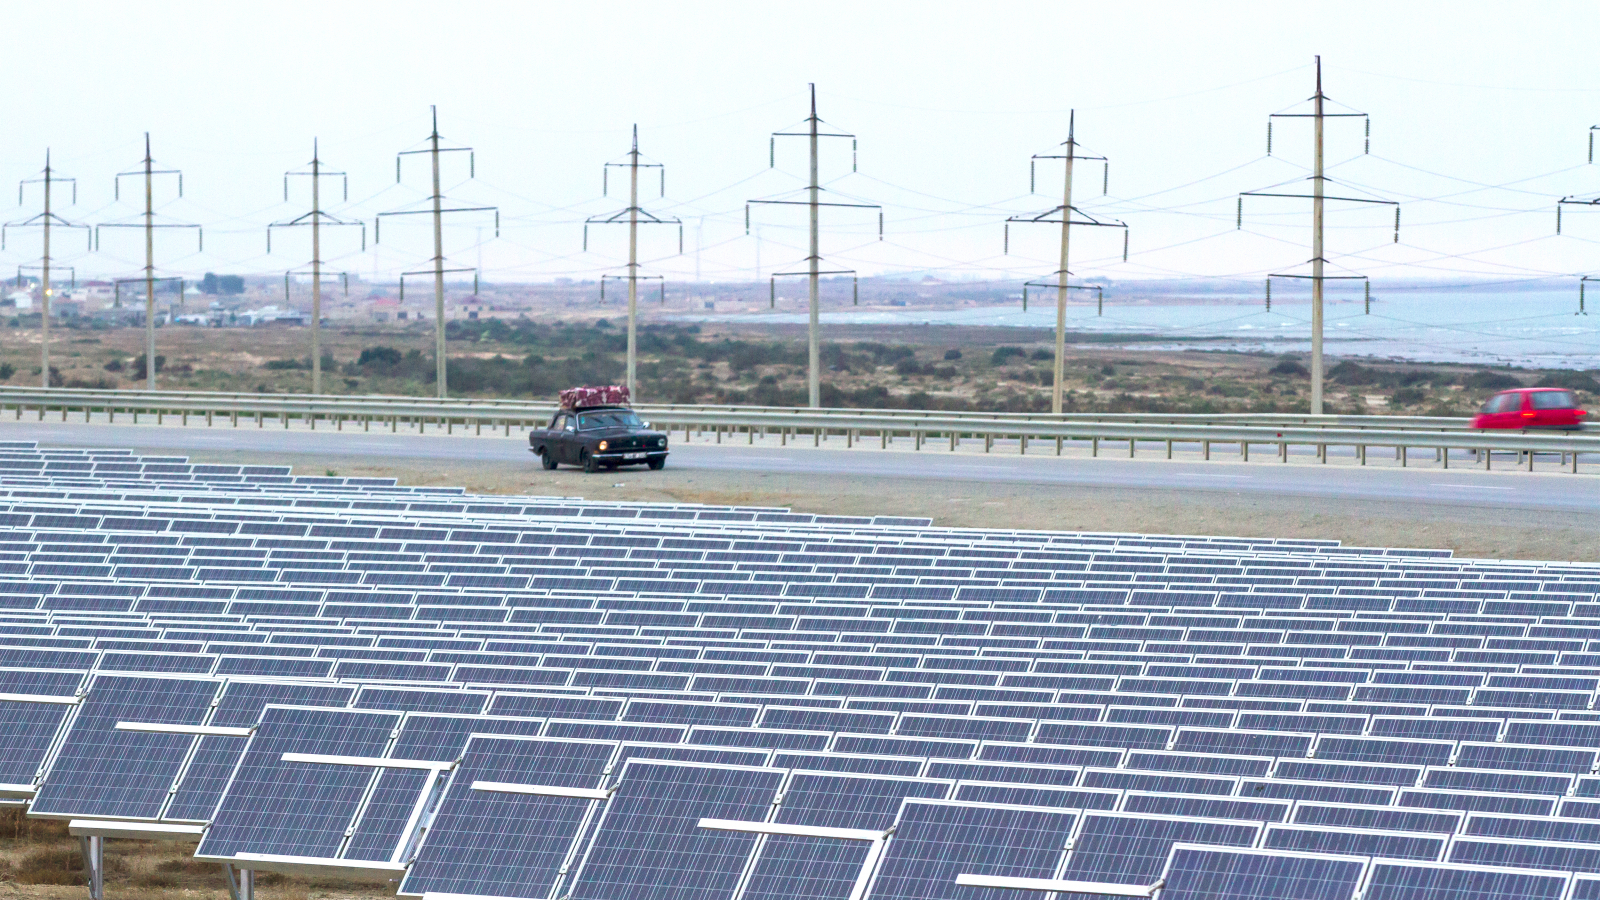 Solar power plant by Baku-Guba highway, Azerbaijan.